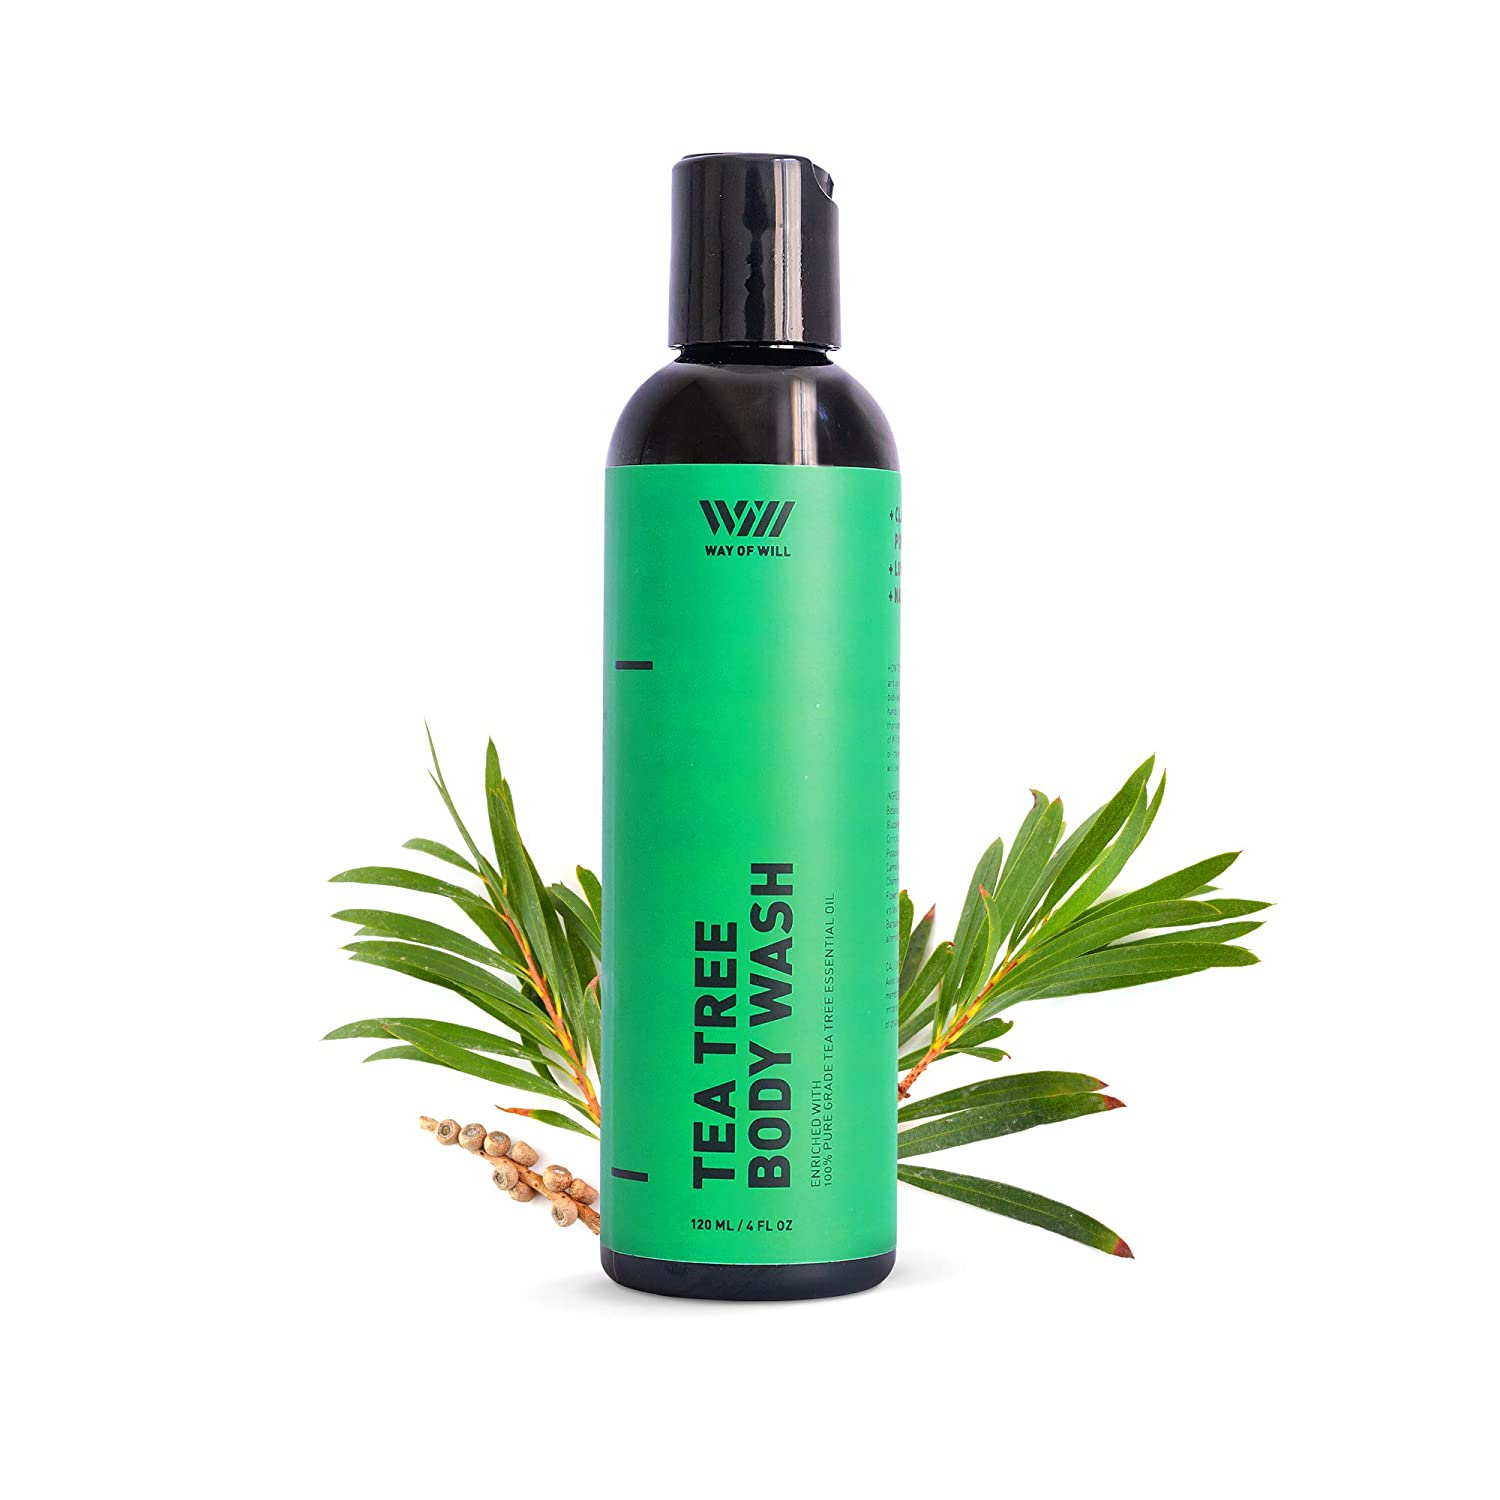 Tea Tree Body Wash, Moisturizing Body Wash with Pure Tea Tree Oil, Soothes Skin, Body Wash for Women and Men, Paraben and Sulfate Free, 120 mL - Way of Will